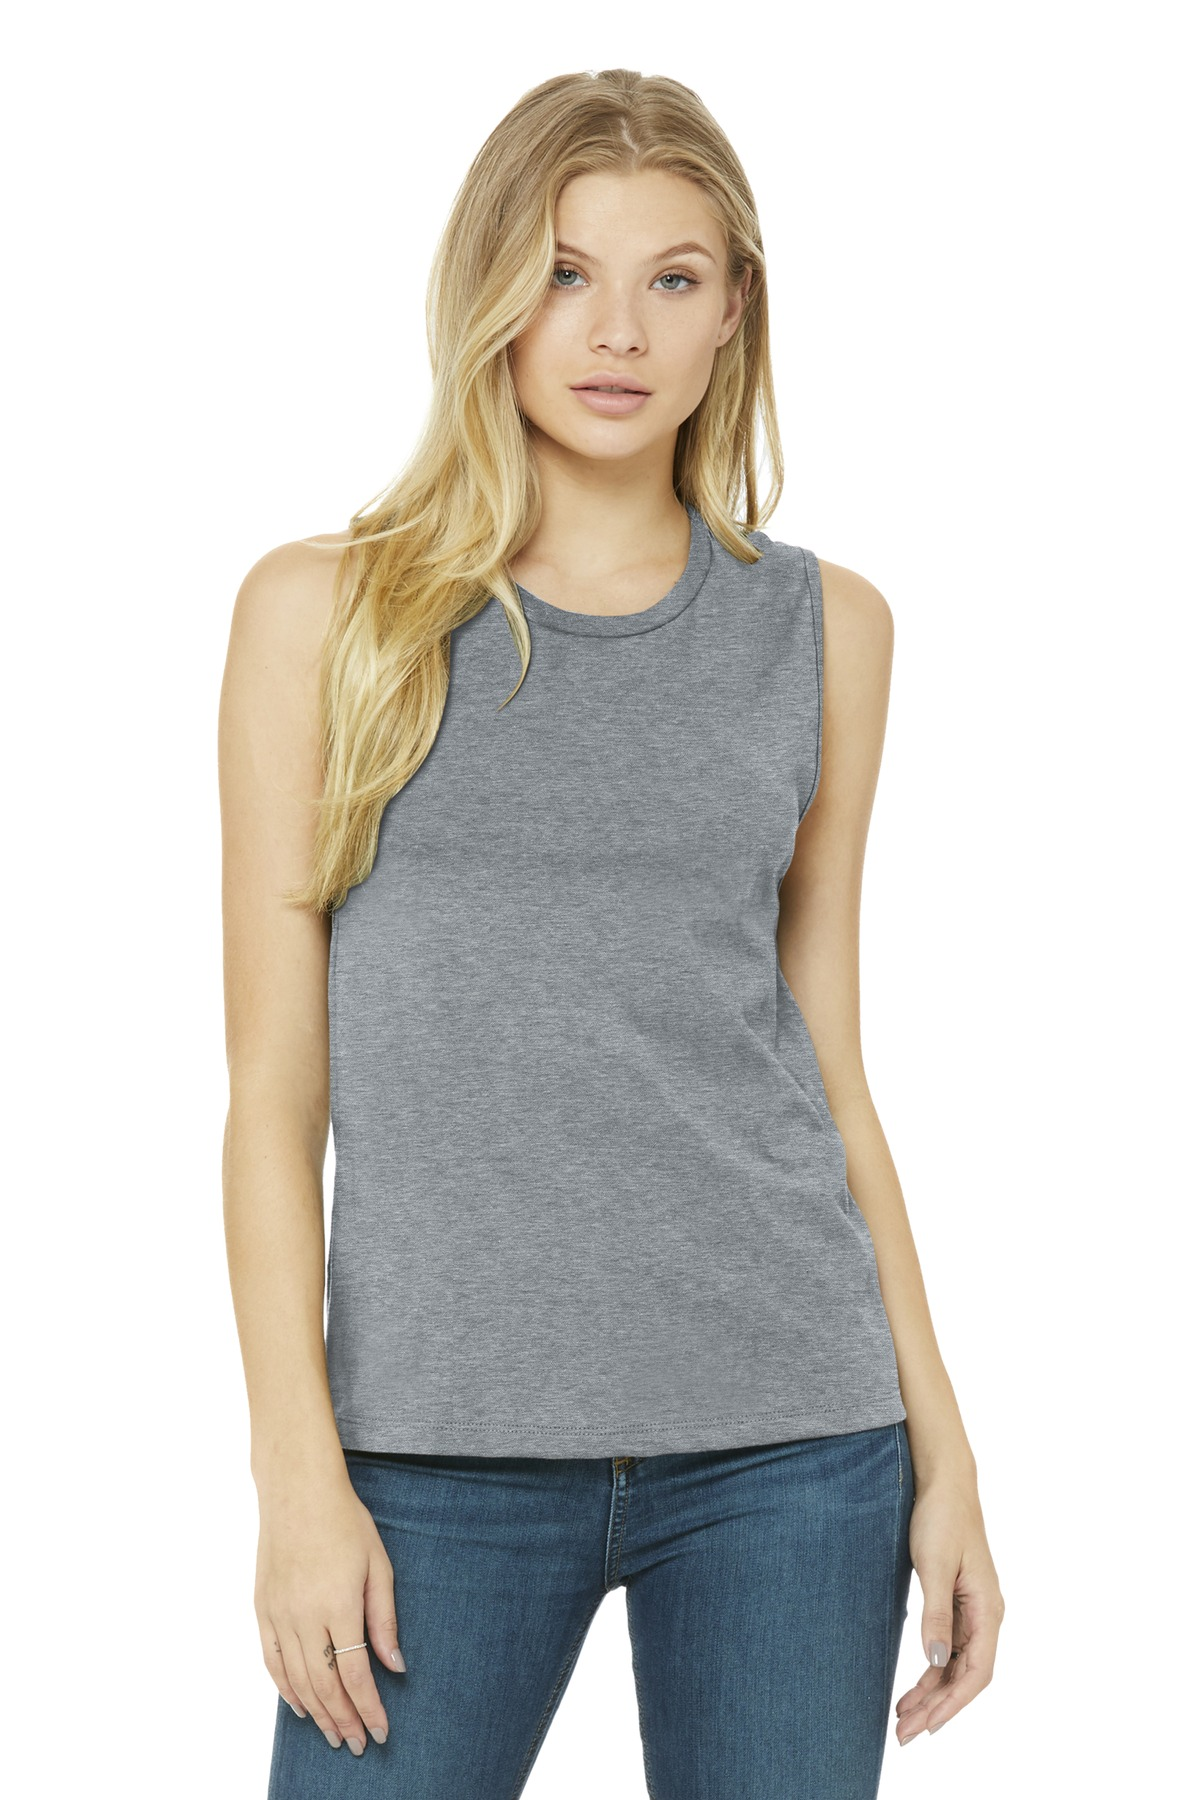 BELLA+CANVAS  ®  Women's Jersey Muscle Tank. BC6003 - Athletic Heather